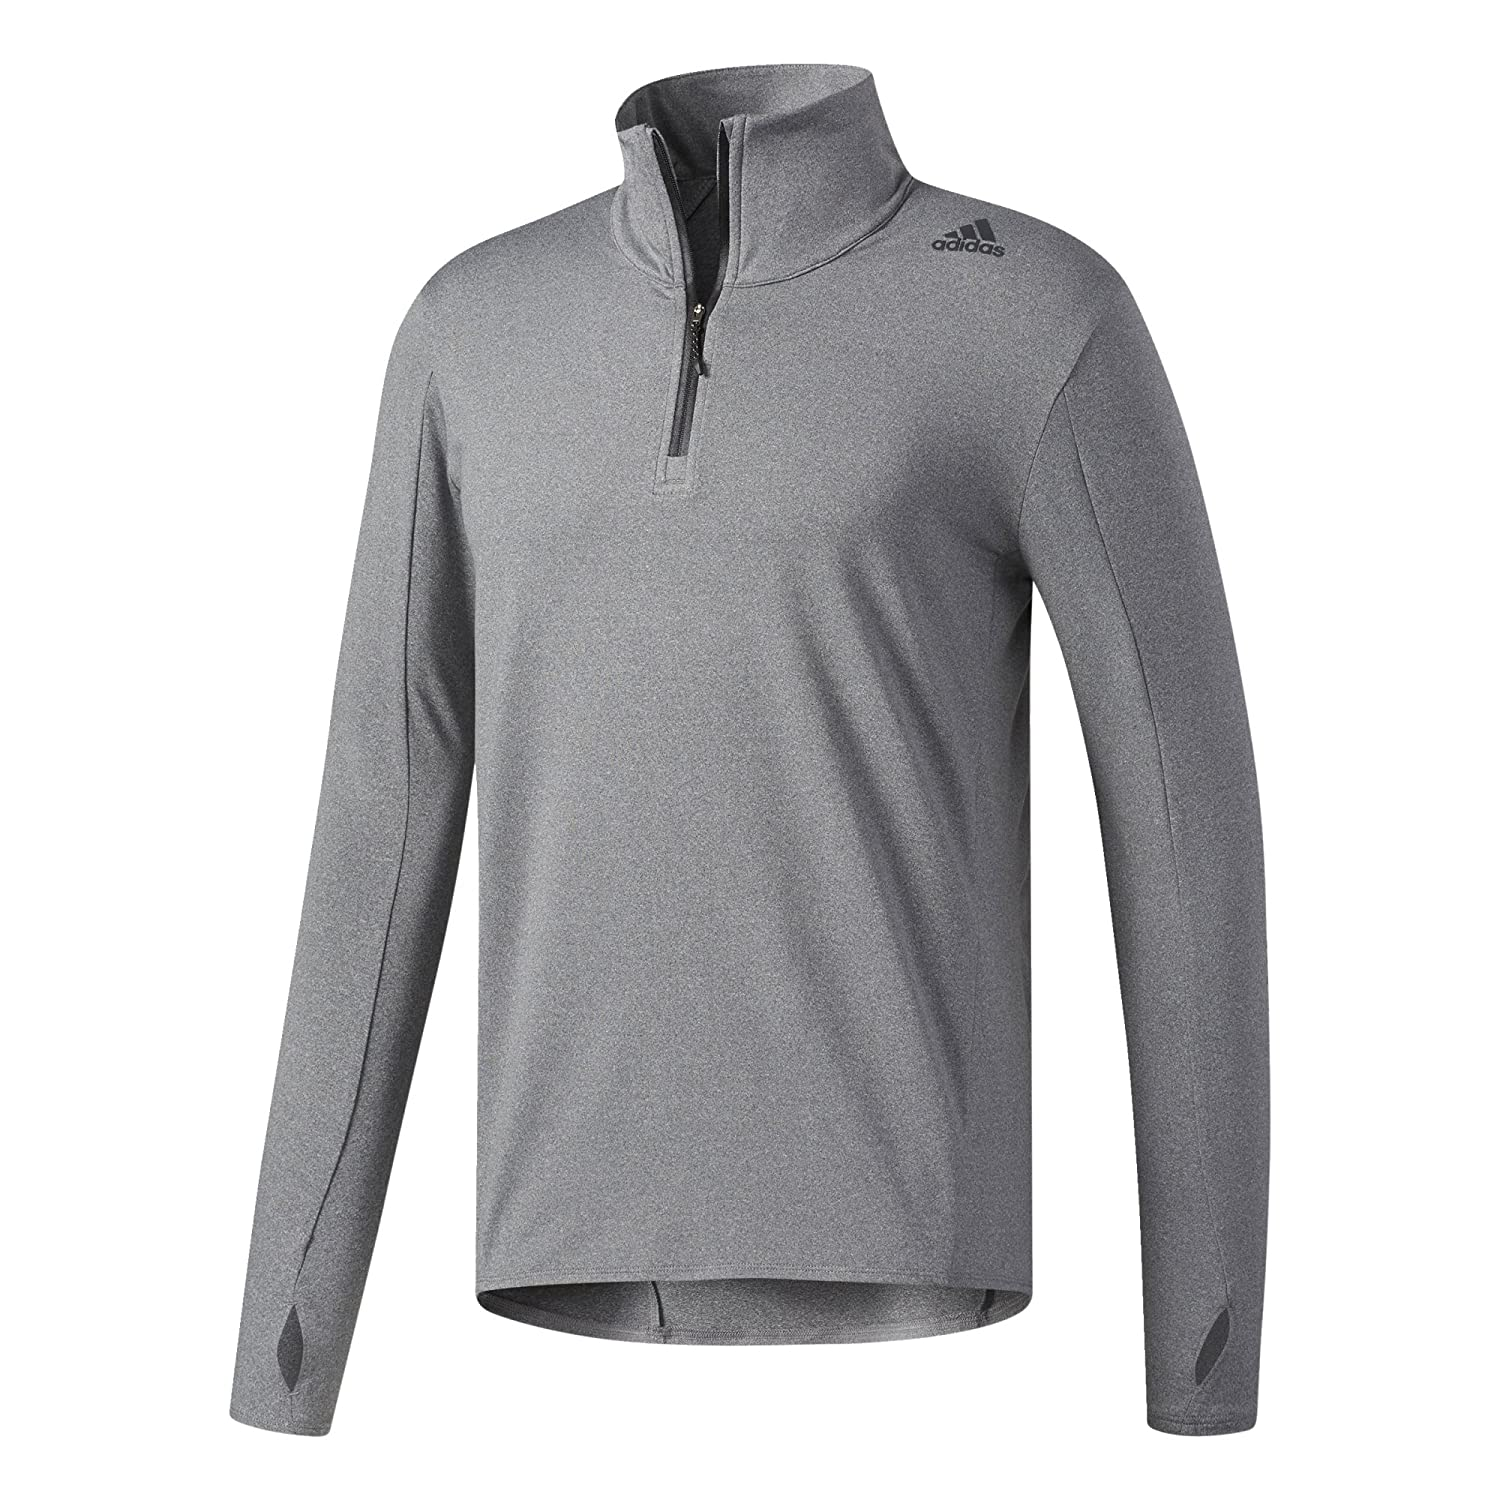 92cbf4ea adidas Men's Supernova 1/2 ZIP Sweatshirt